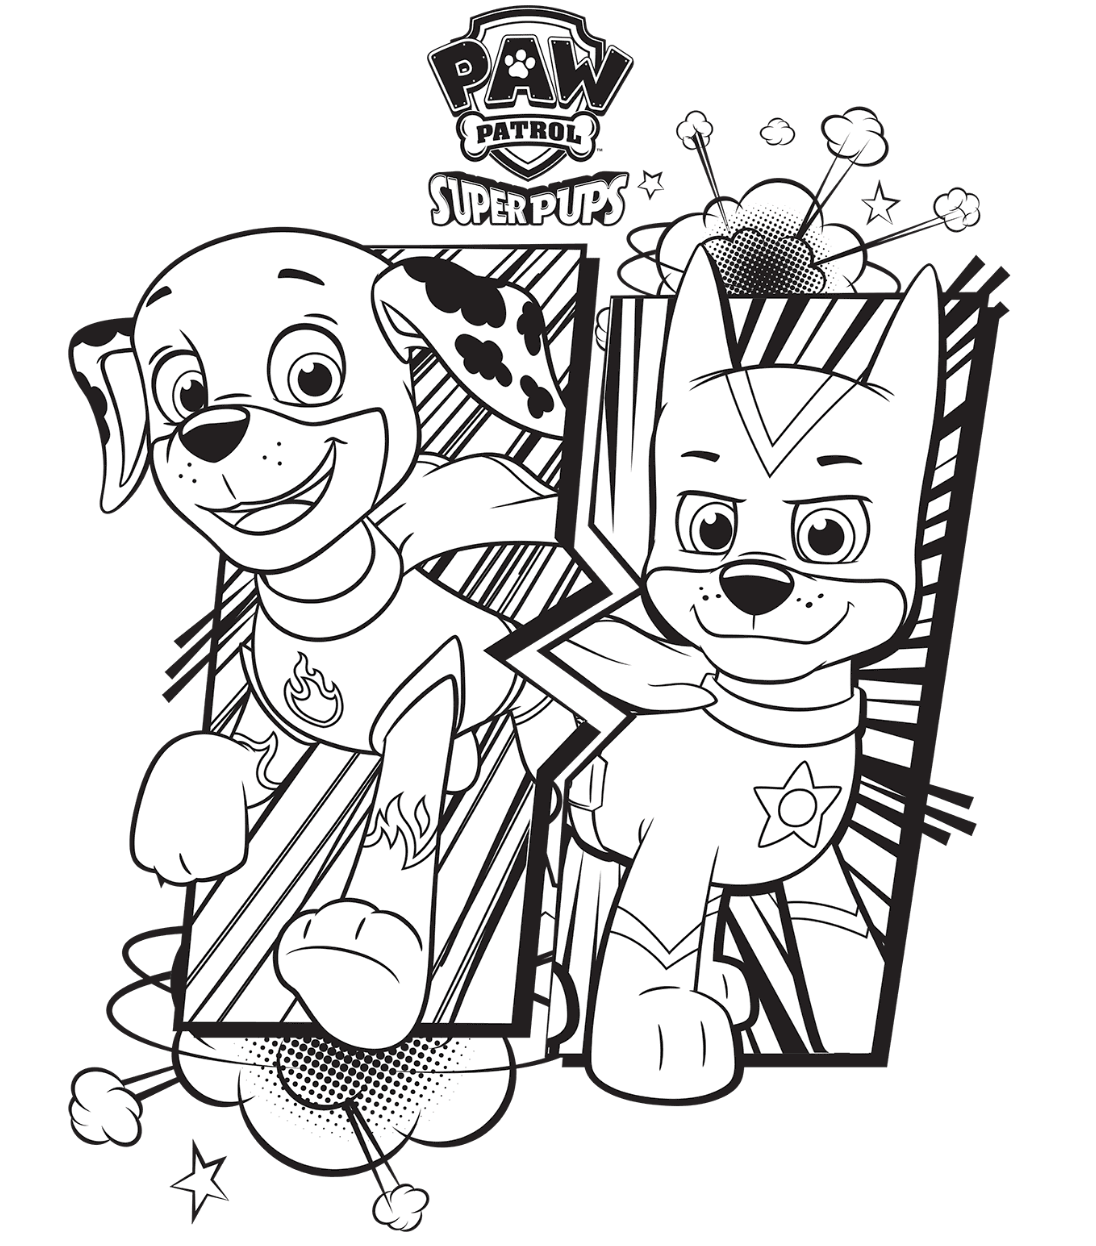 1096x1246 Paw Patrol Super Pups Chase And Marshall Colouring Page Coloring